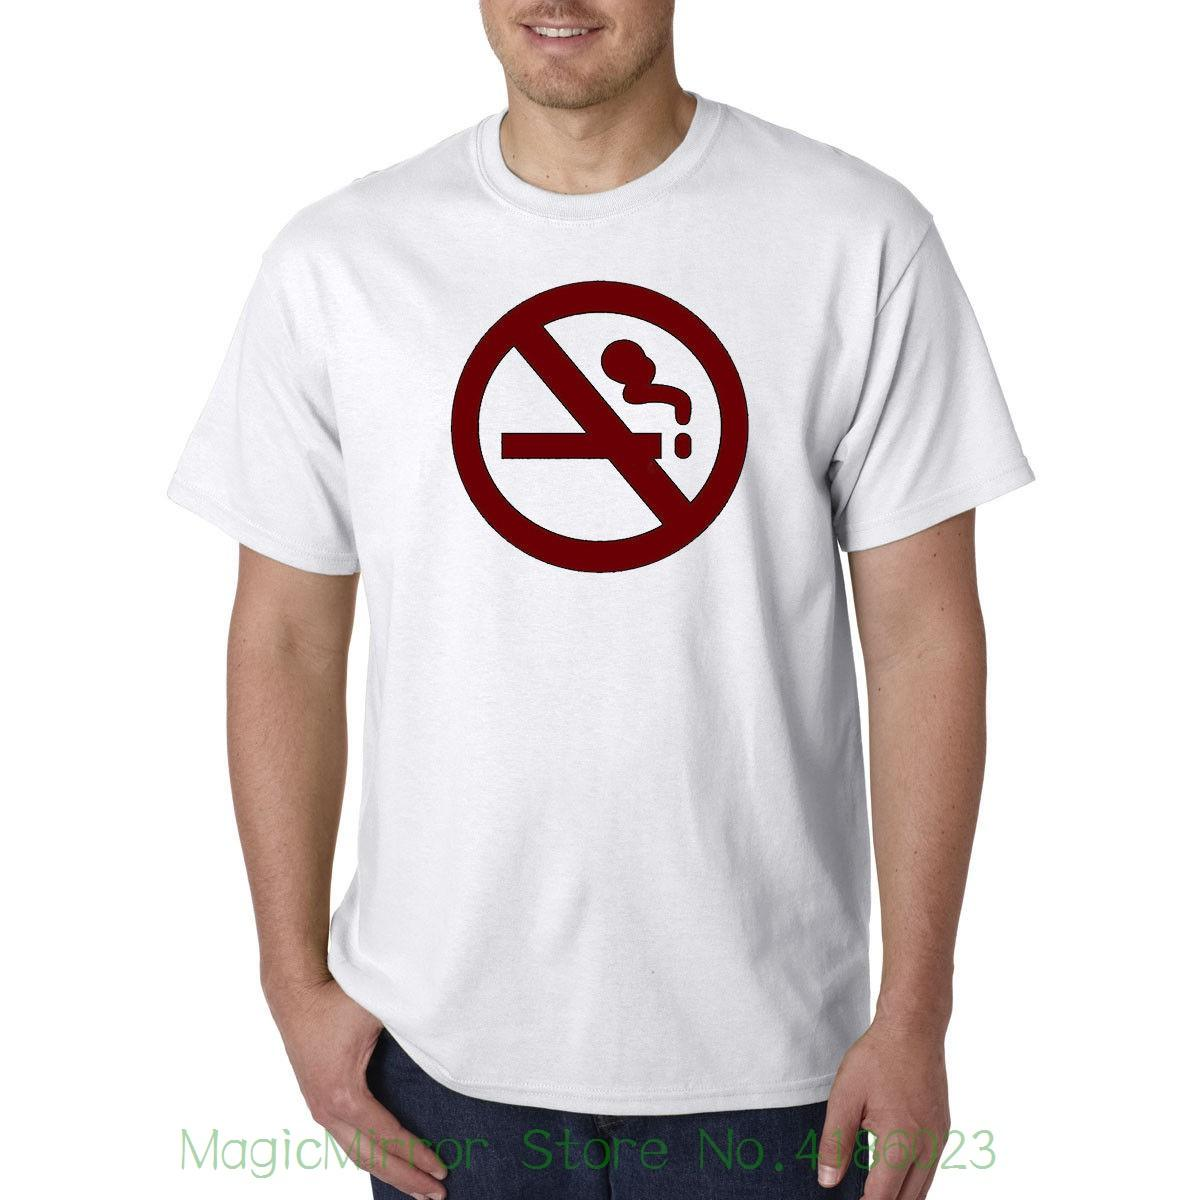 529a8663f27a No Discount Wholesale Ban Cigarette Sticker Nice Awesome T Shirt Best  Birthday Gift Men Summer Short Sleeves Casual Coolest Tees Awesome Tee Shirt  From ...